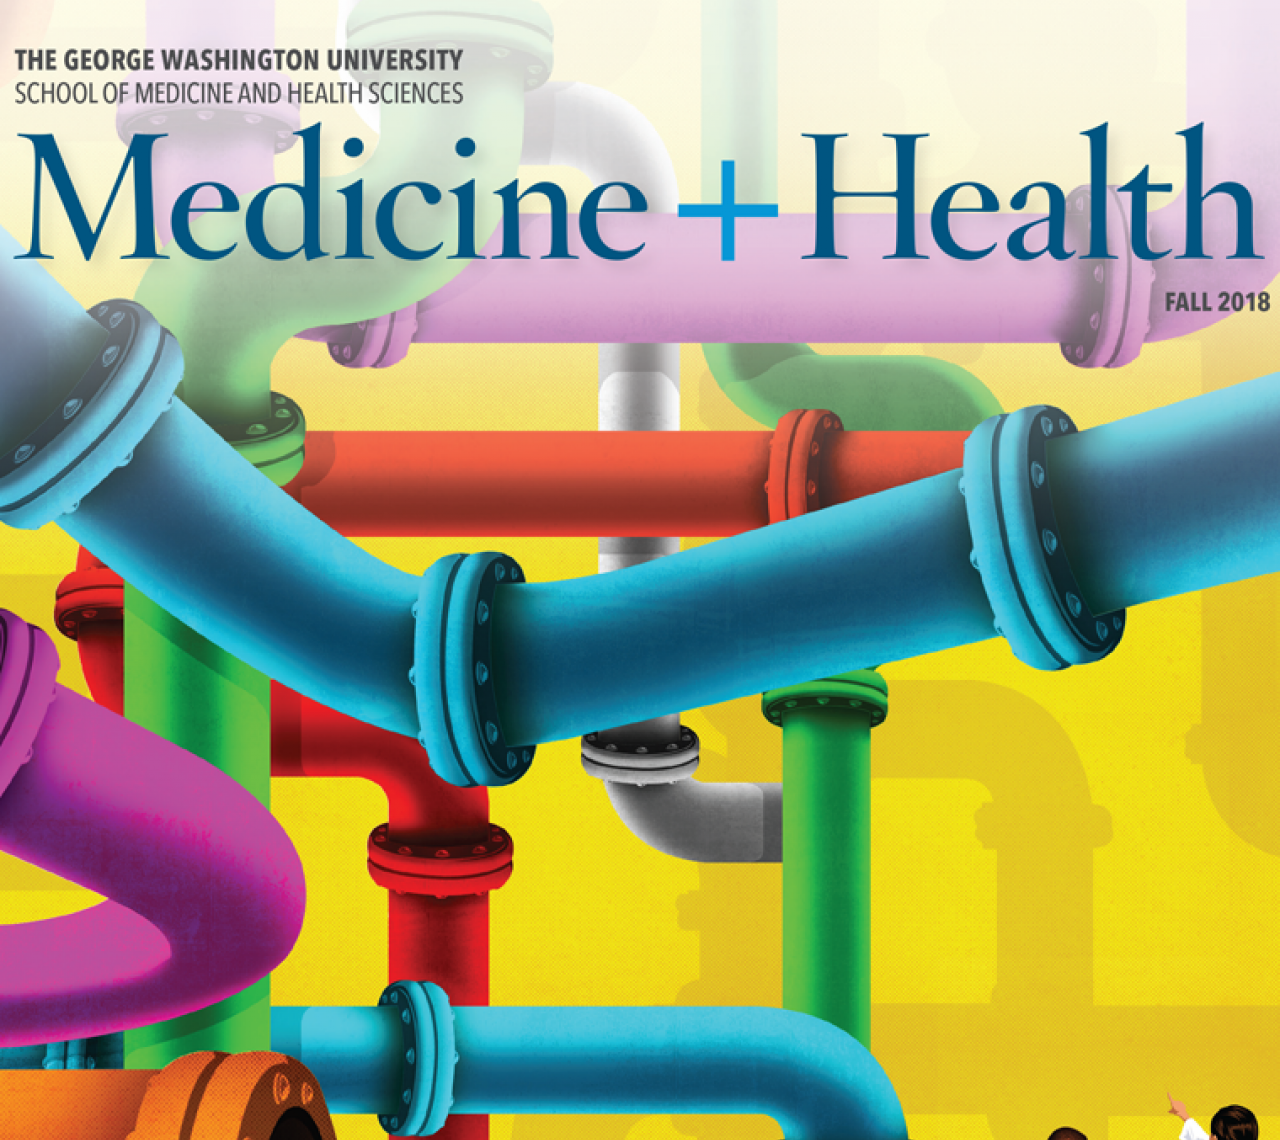 George Washington Medicine and Health Fall 2018 magazine cover